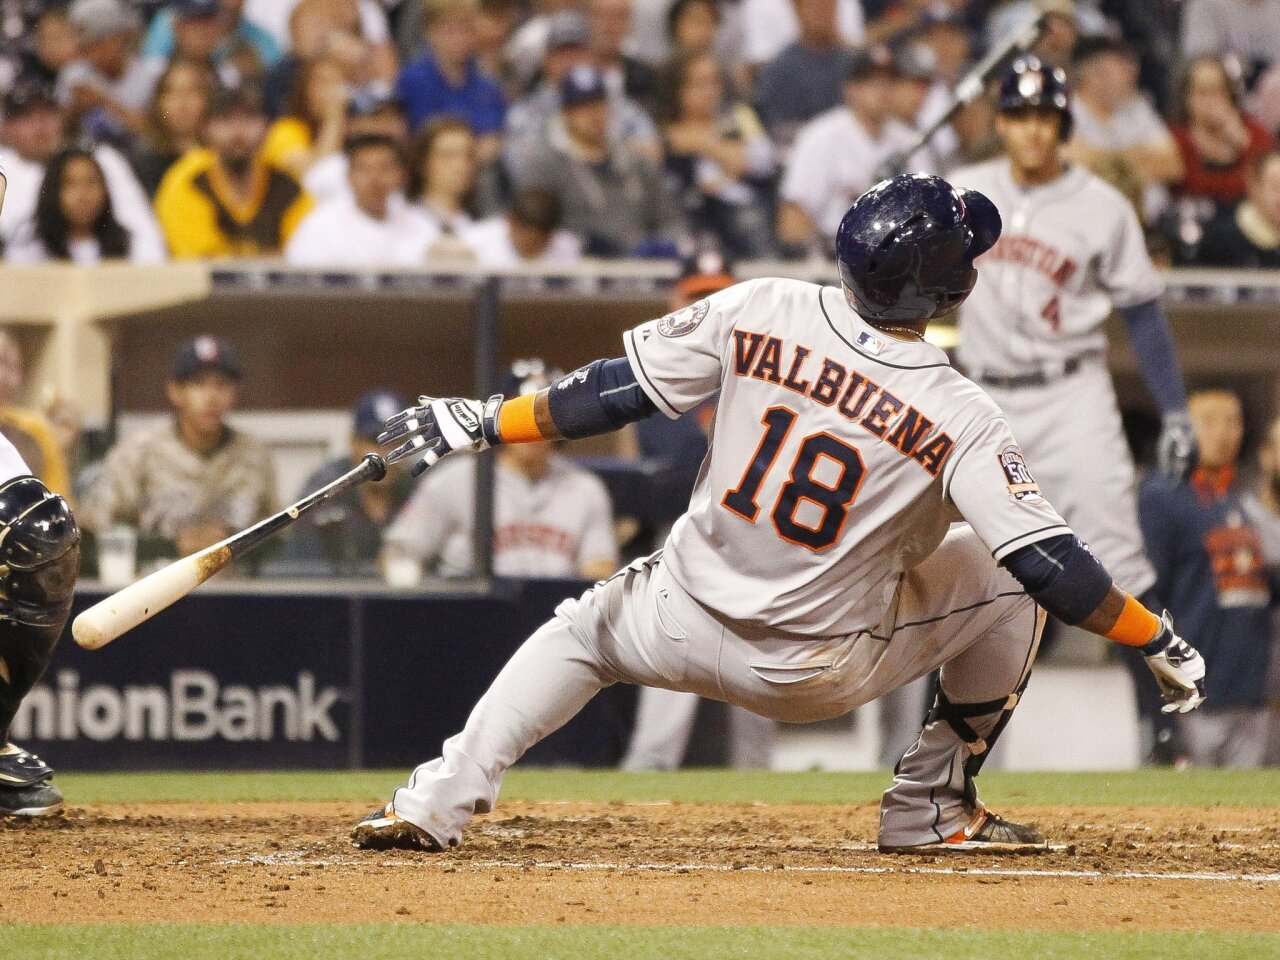 The Astros' Luis Valbuena falls after it appeared that he was hit by a pitch in the fifth inning. A replay also appeared to show that he was not hit. The Padres lost 14-3 at Petco Park in San Diego on Tuesday, April 28, 2015.